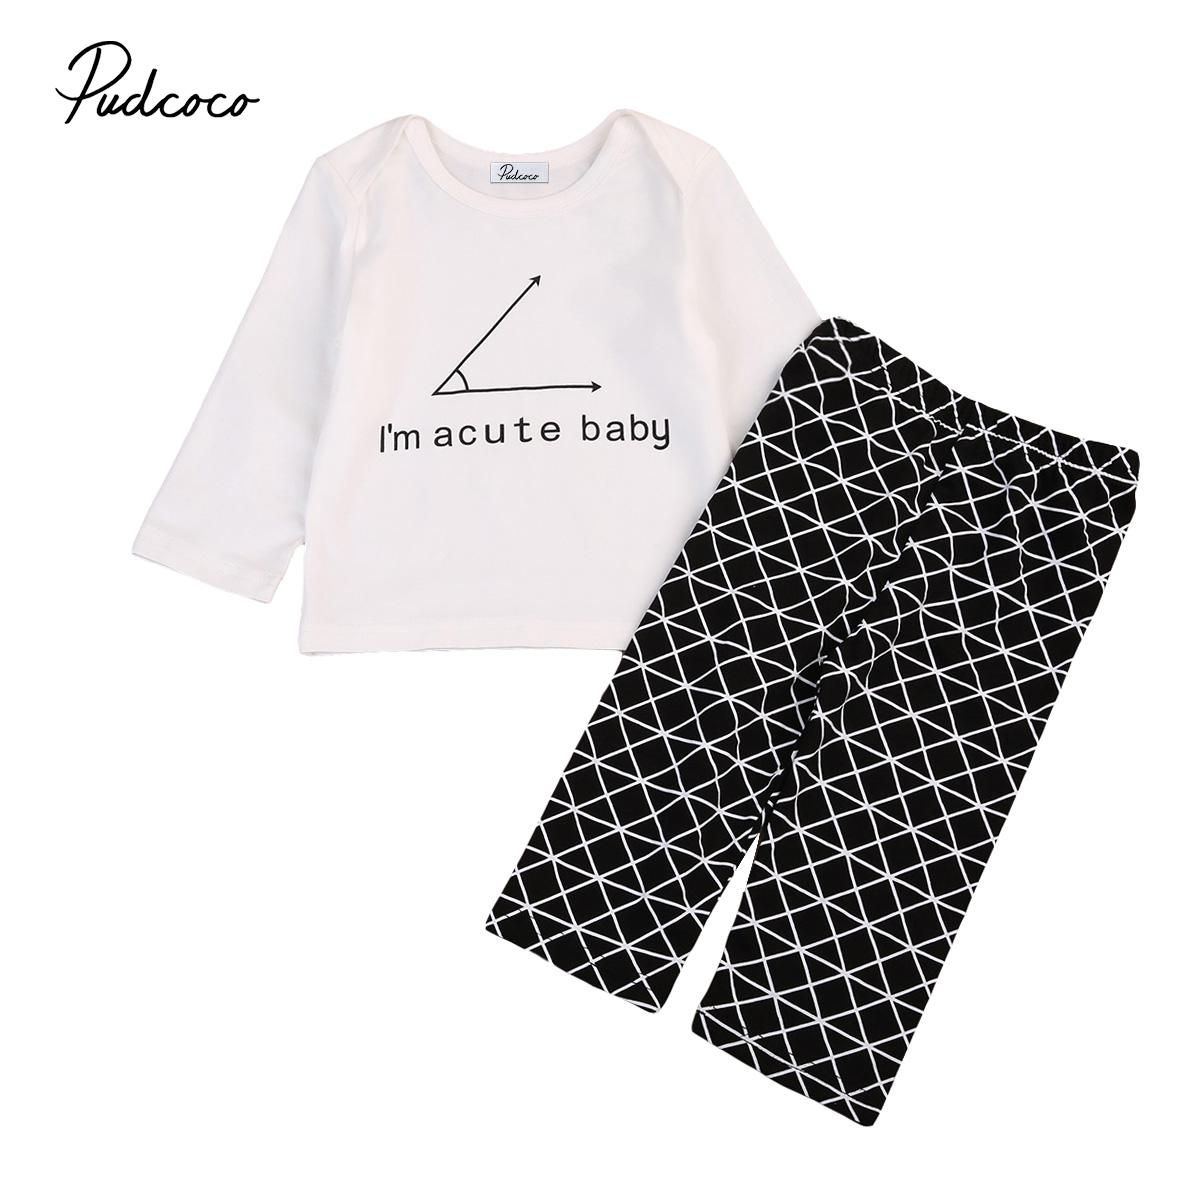 66c6a08fa094 New Cute Newborn Baby Outfits Infant Kids Boy Long Sleeve T-shirt Cotton  Blend Pullover Tops Geometric Pants 2pcs Baby Boys Set. Yesterday s price   US  5.45 ...